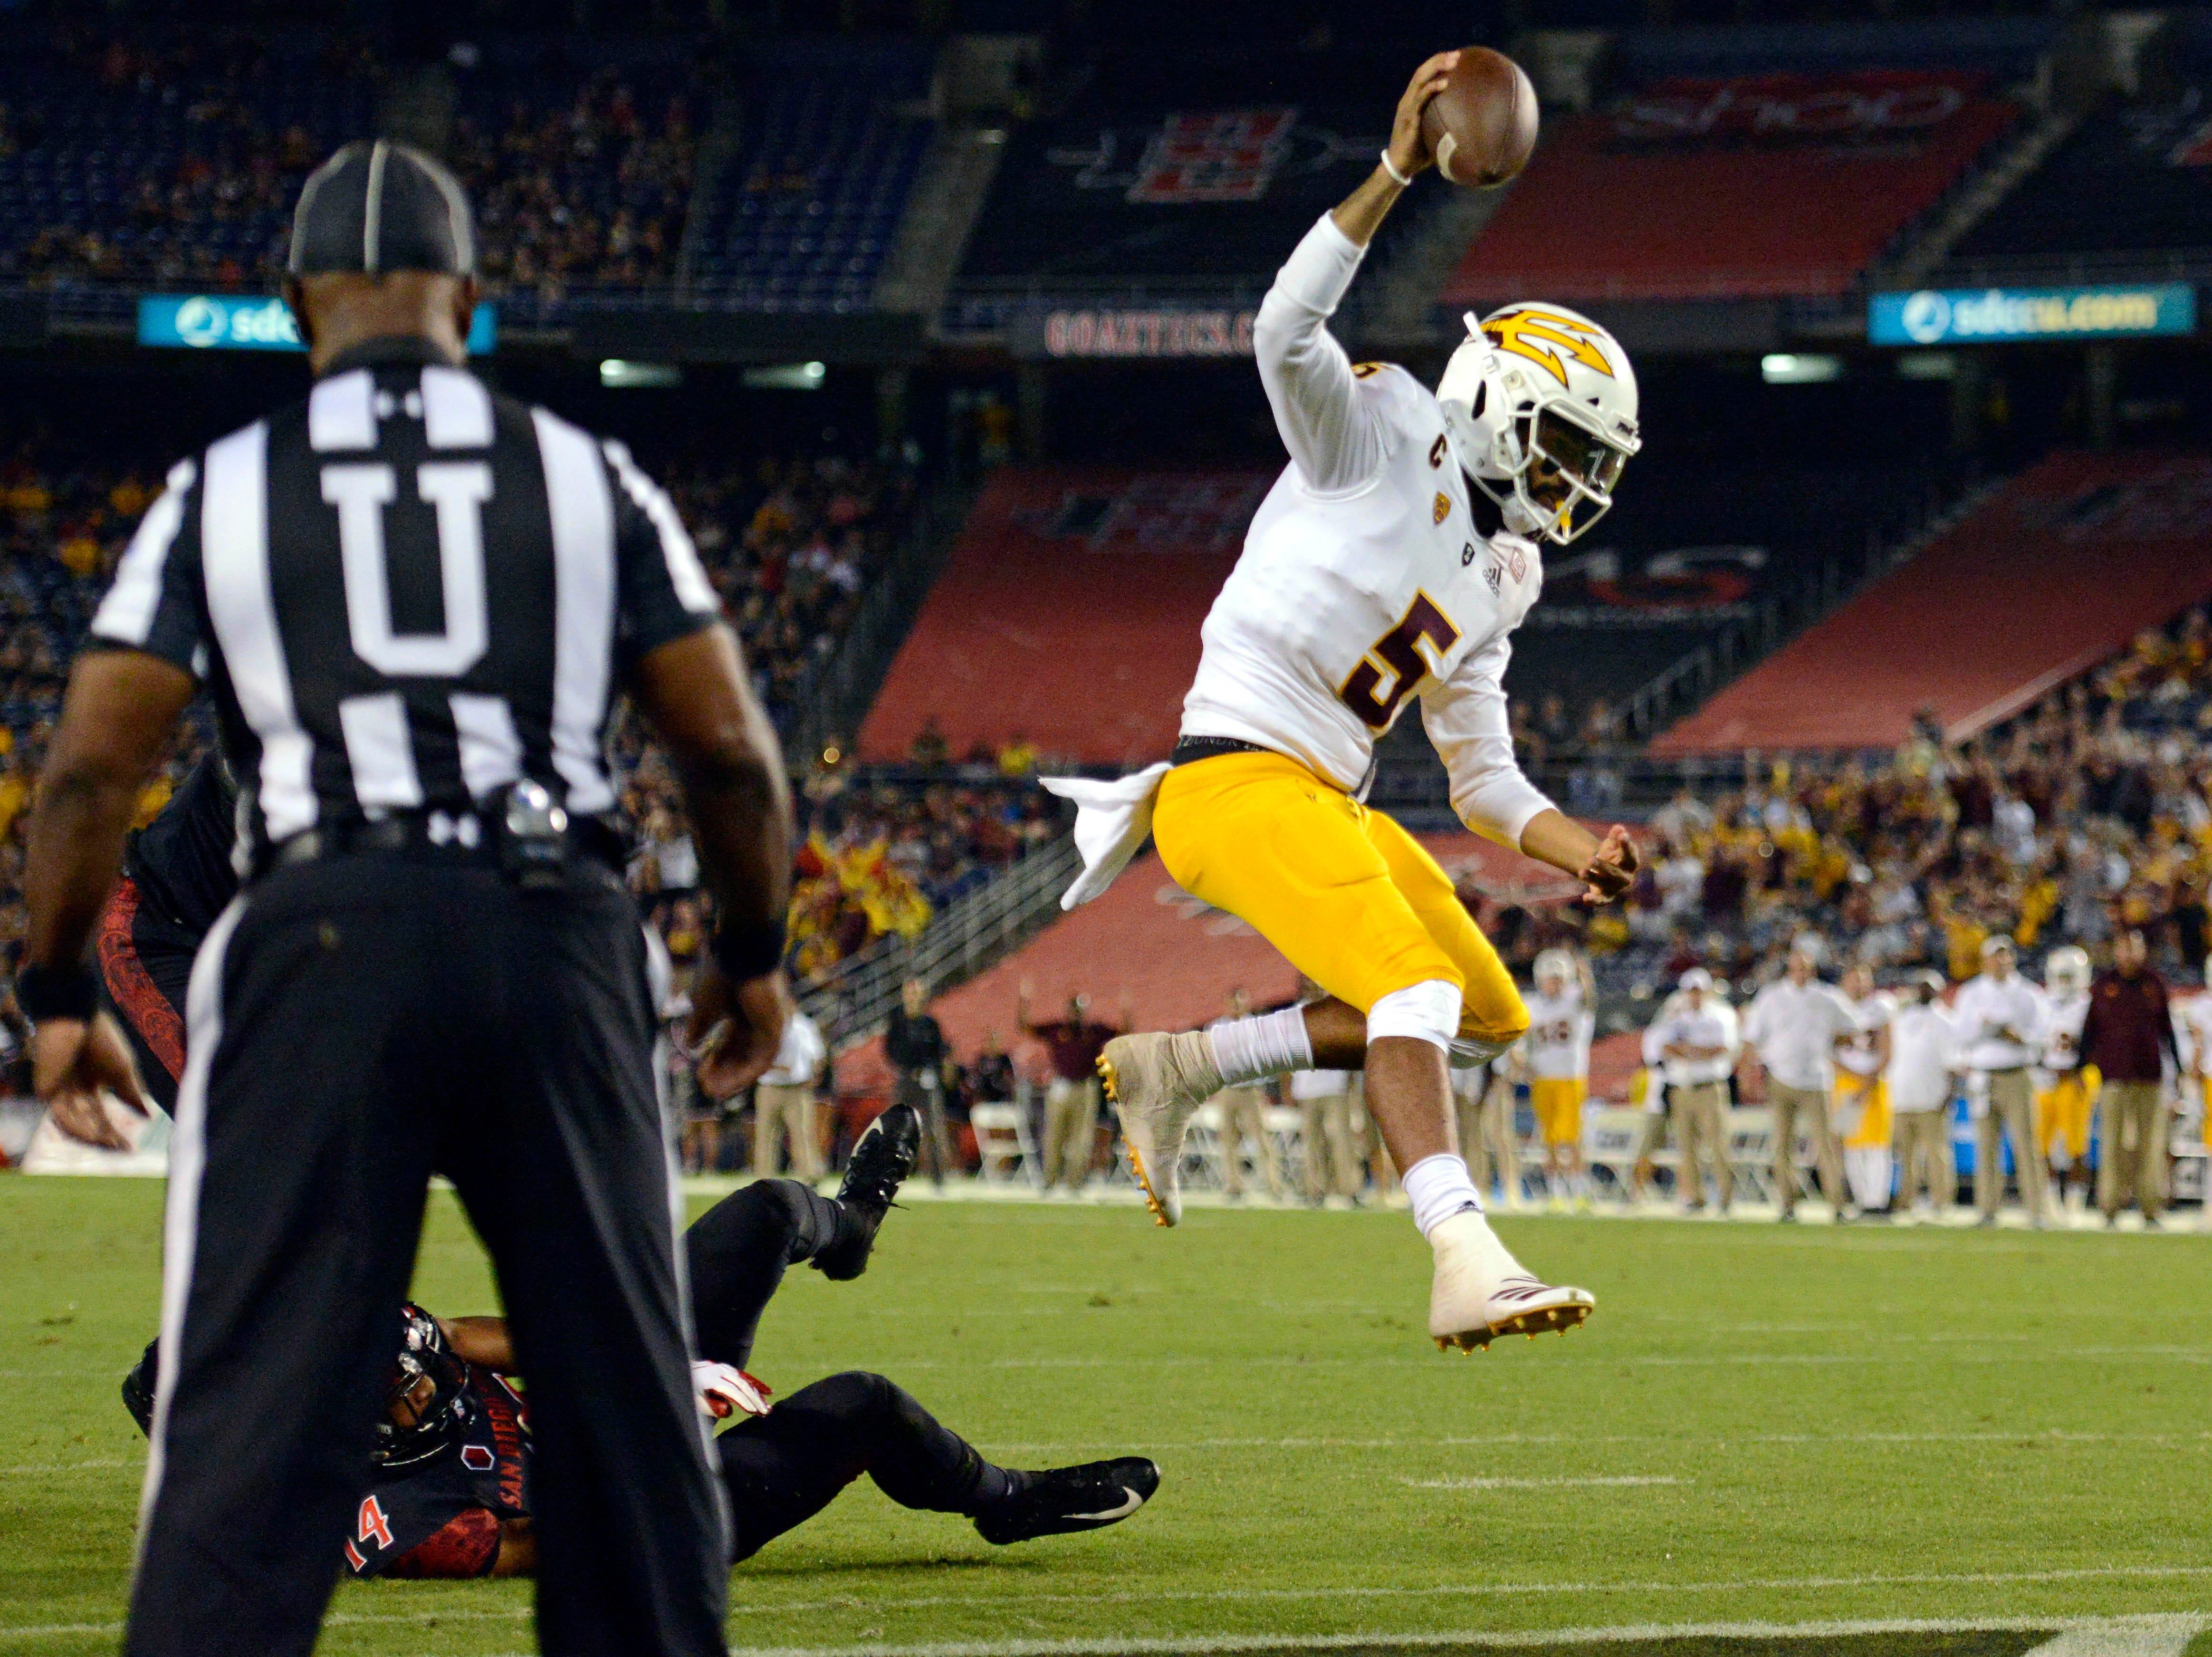 Arizona State Sun Devils quarterback Manny Wilkins (5) scores a touchdown against San Diego State Aztecs safety Tariq Thompson (14) during the second quarter at SDCCU Stadium.